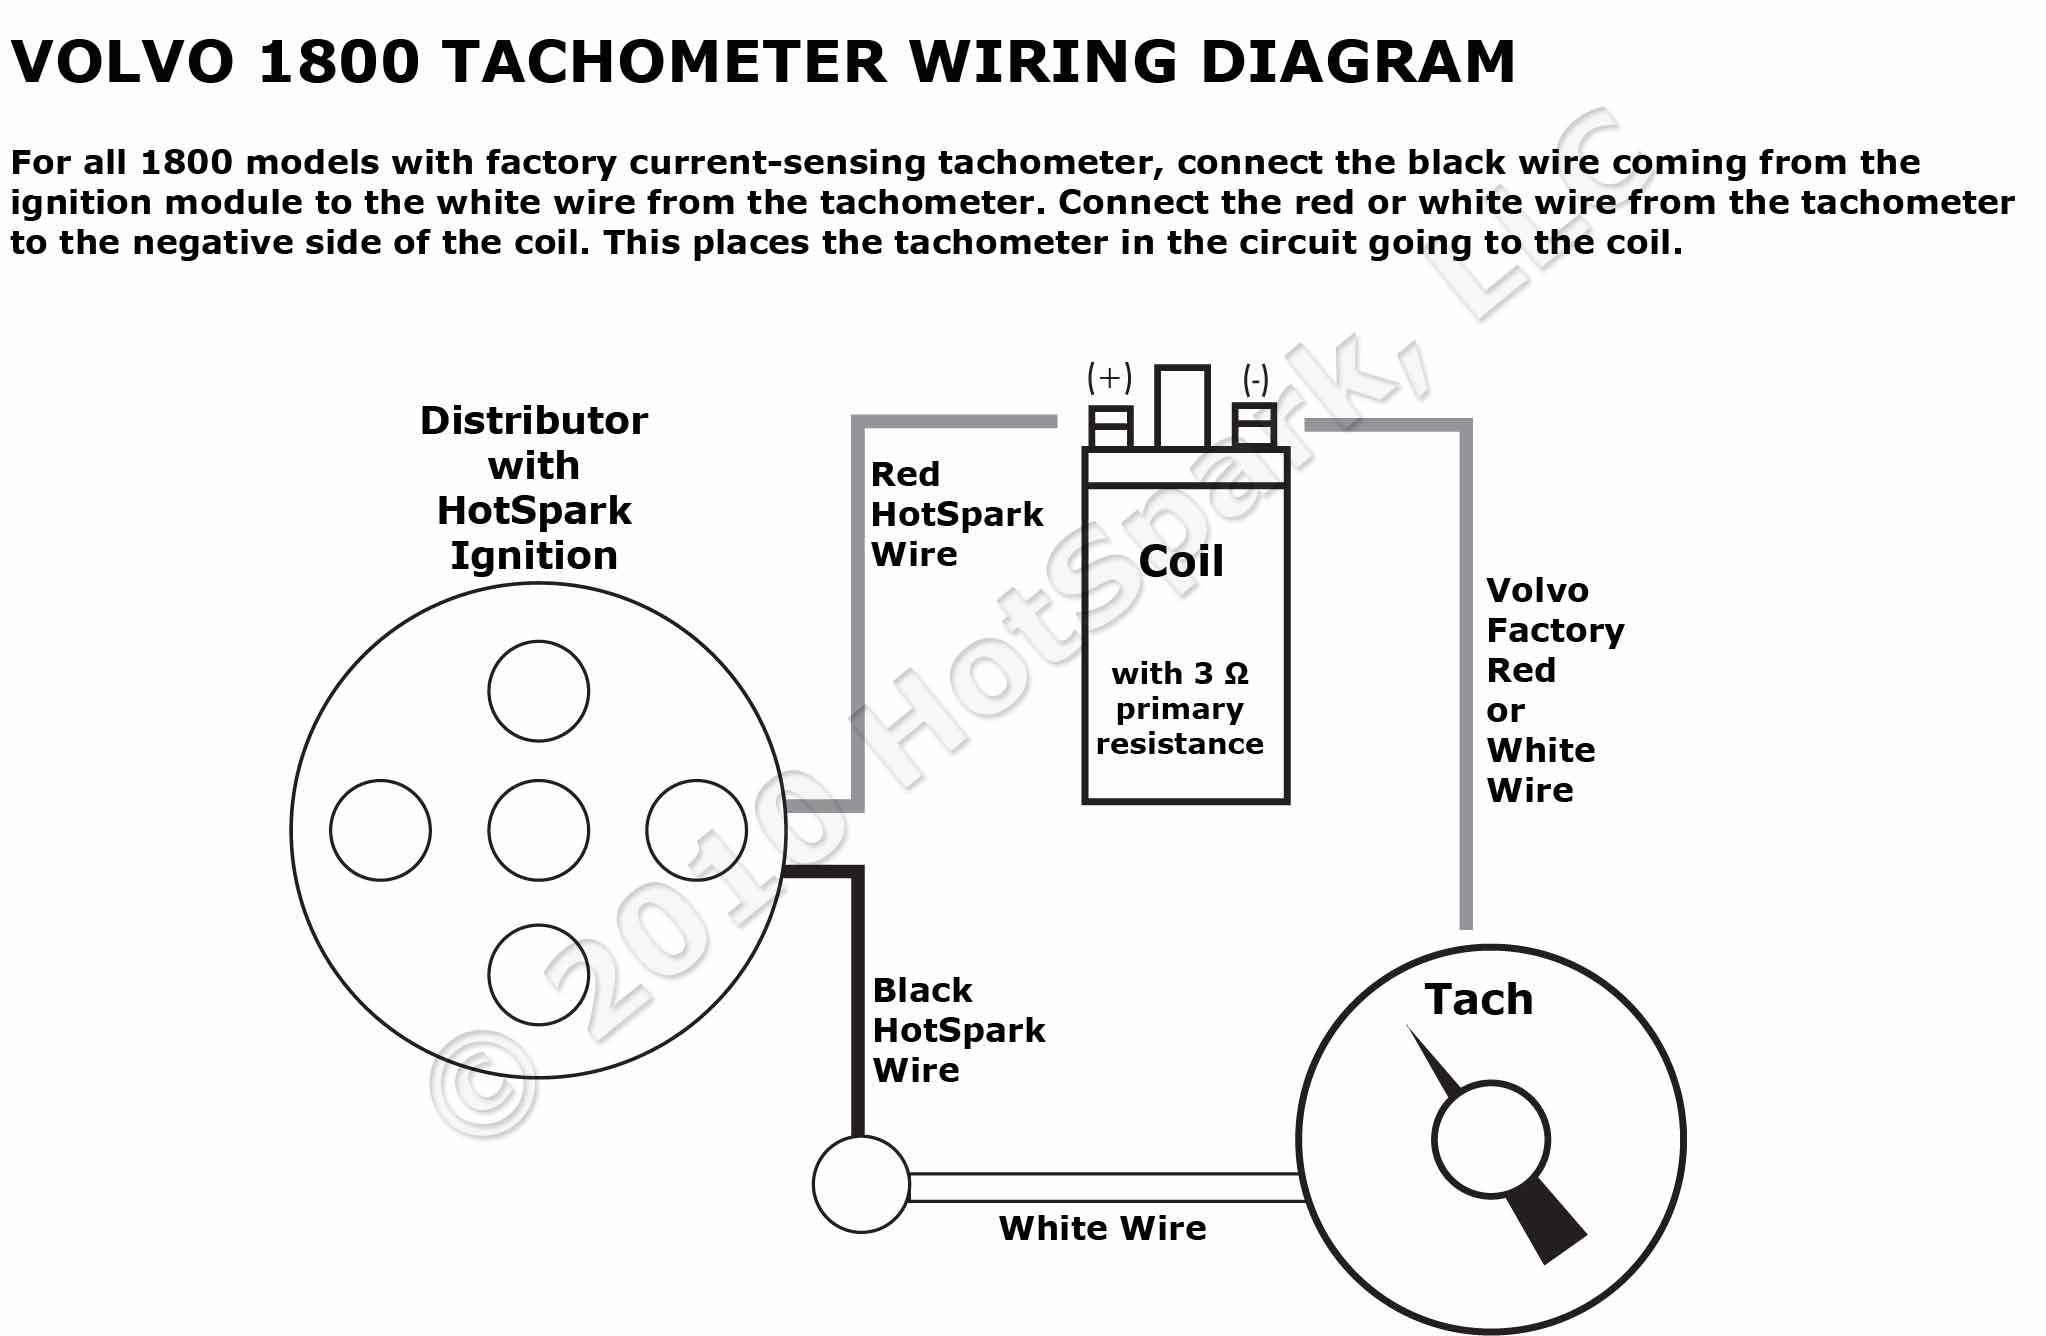 Volvo 1800 Wiring Diagram on sunbeam tiger engine